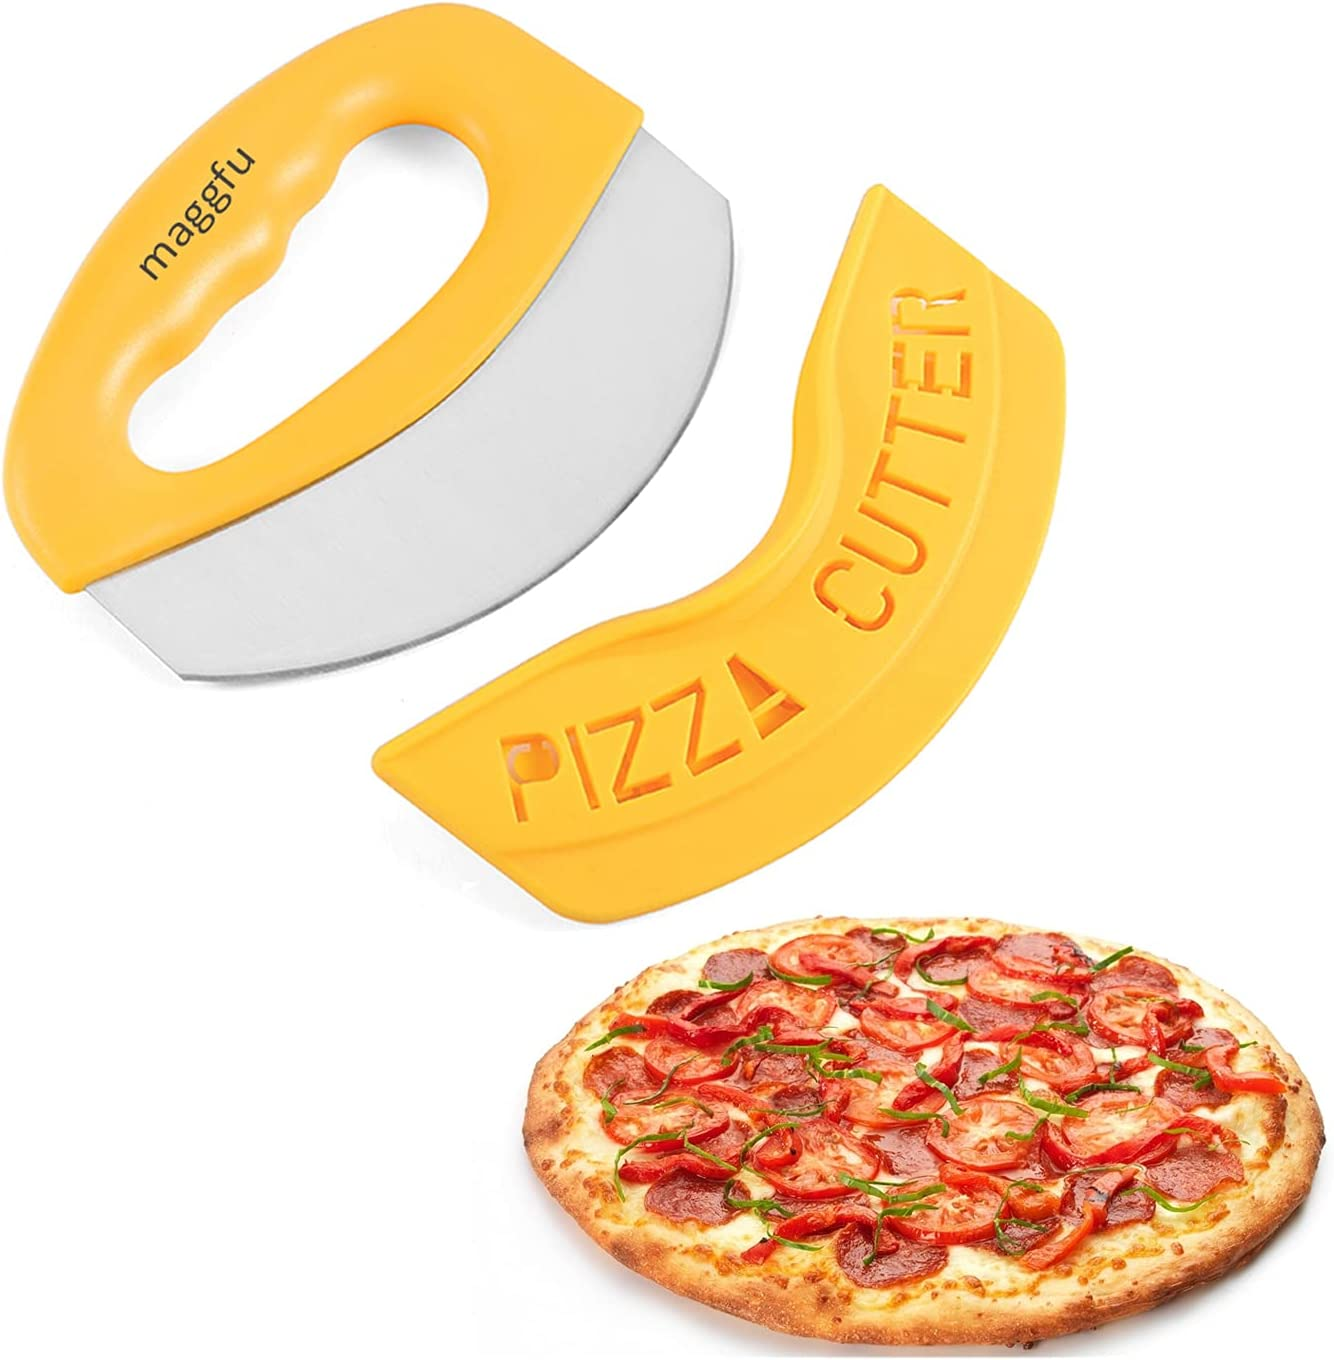 maggfu Premium Pizza High quality new Spring new work Cutter With Cover Stainless Stee Protective